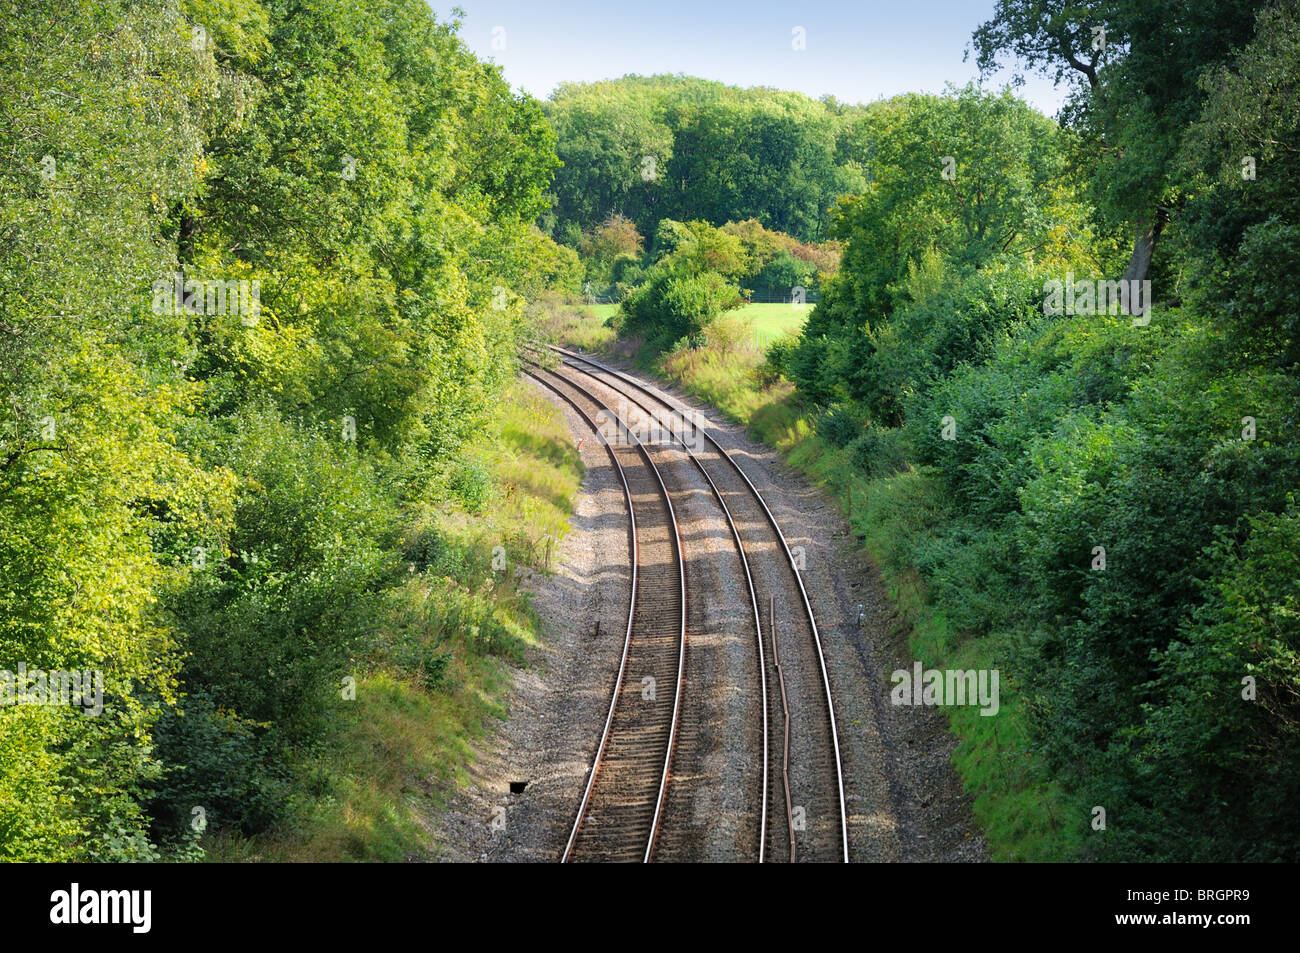 Railway lines in countryside - Stock Image